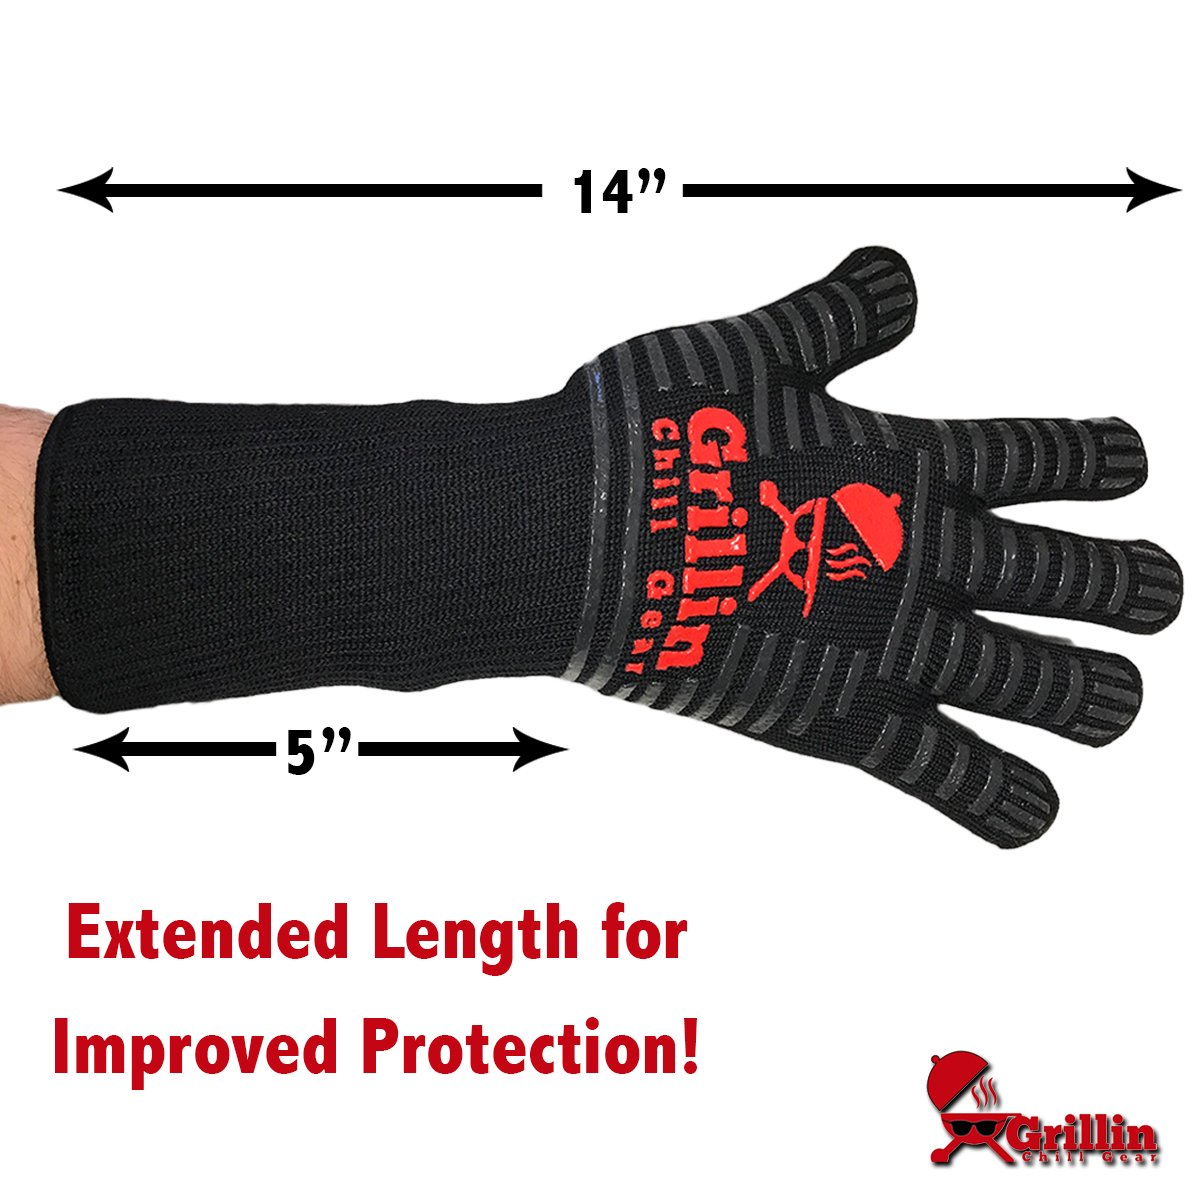 Grillin Chill Gear Meat Claws - Best Bear Claw Pulled Pork Meat Shredders in BBQ Grill Accessories +Extreme Heat Resistant Grill Gloves, Heavy Duty Aramid Fiber & Non Slip Silicone, Soft Cotton Liner by Grillin Chill Gear (Image #3)